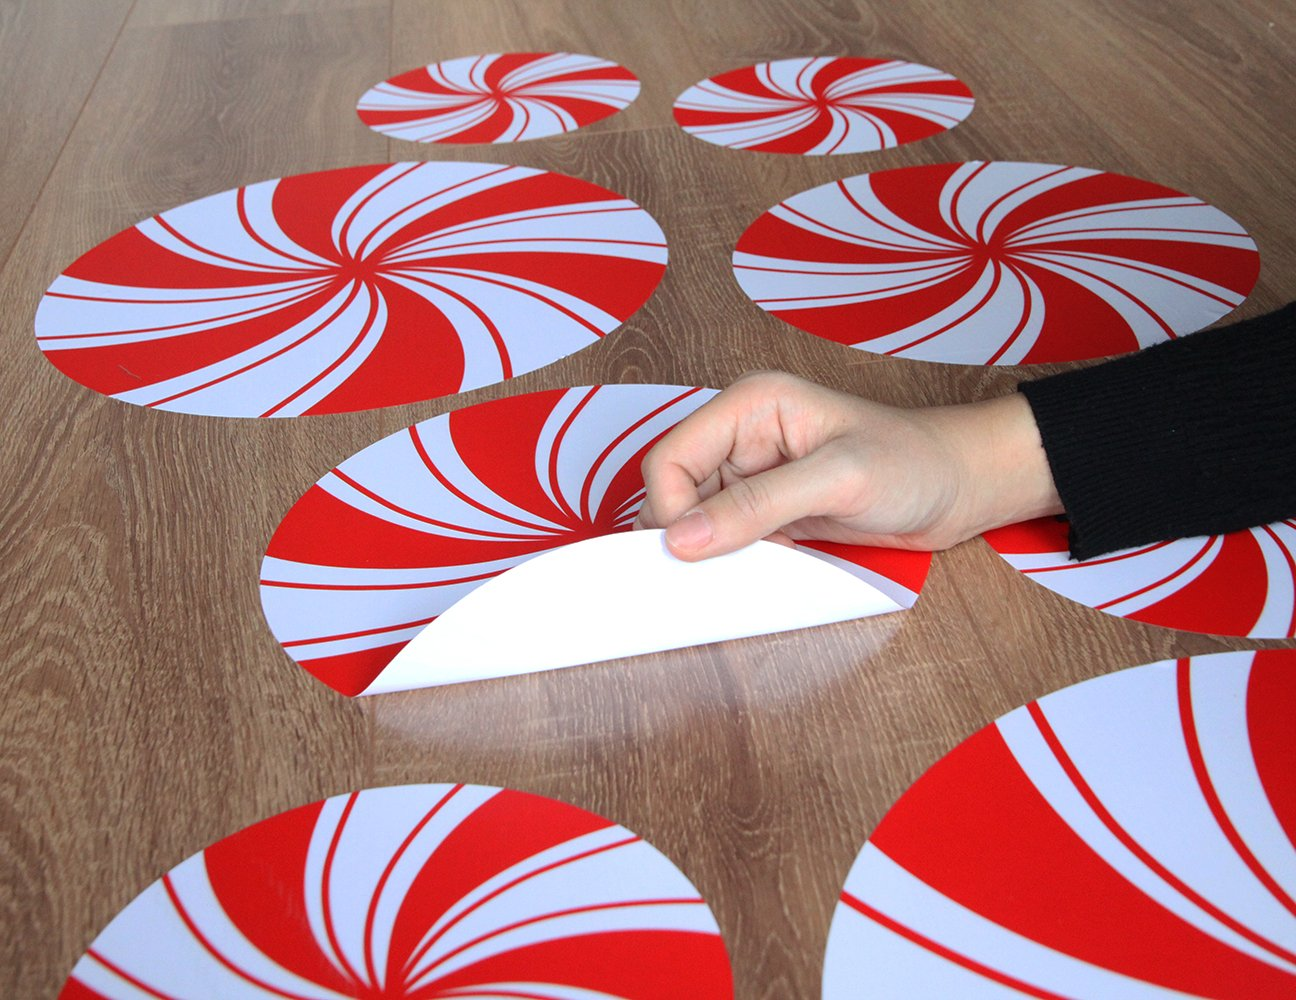 Peppermint Floor Decals Stickers for Christmas Candy Party Decoration 8 Pcs by ceiba tree (Image #4)